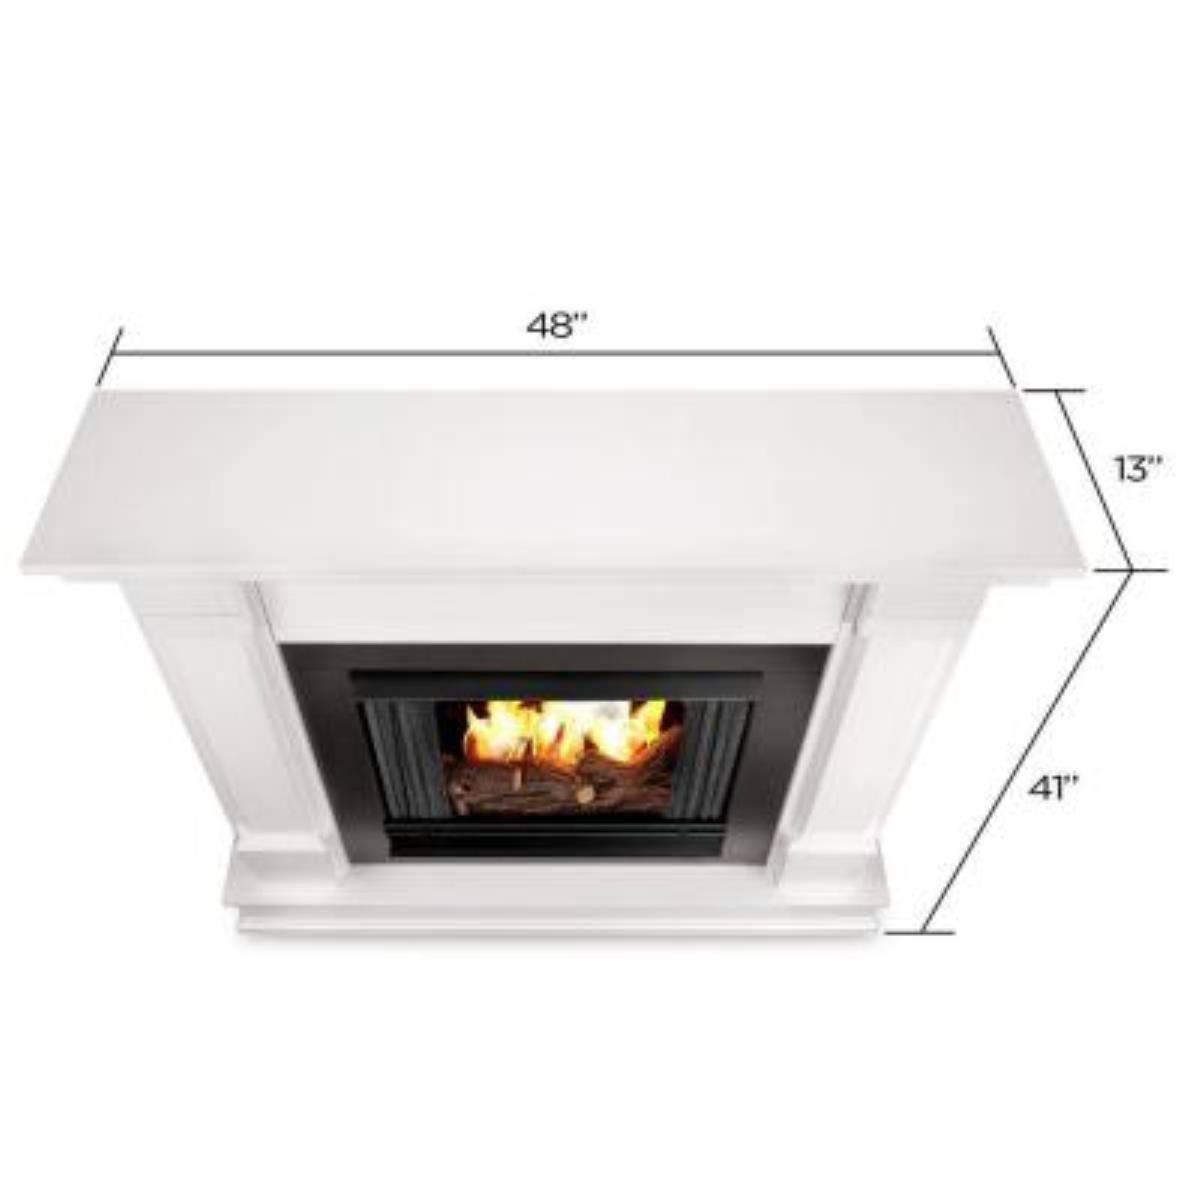 Buy Silverton Gel Fireplace in White: Gel & Ethanol Fireplaces - Amazon.com ? FREE DELIVERY possible on eligible purchases